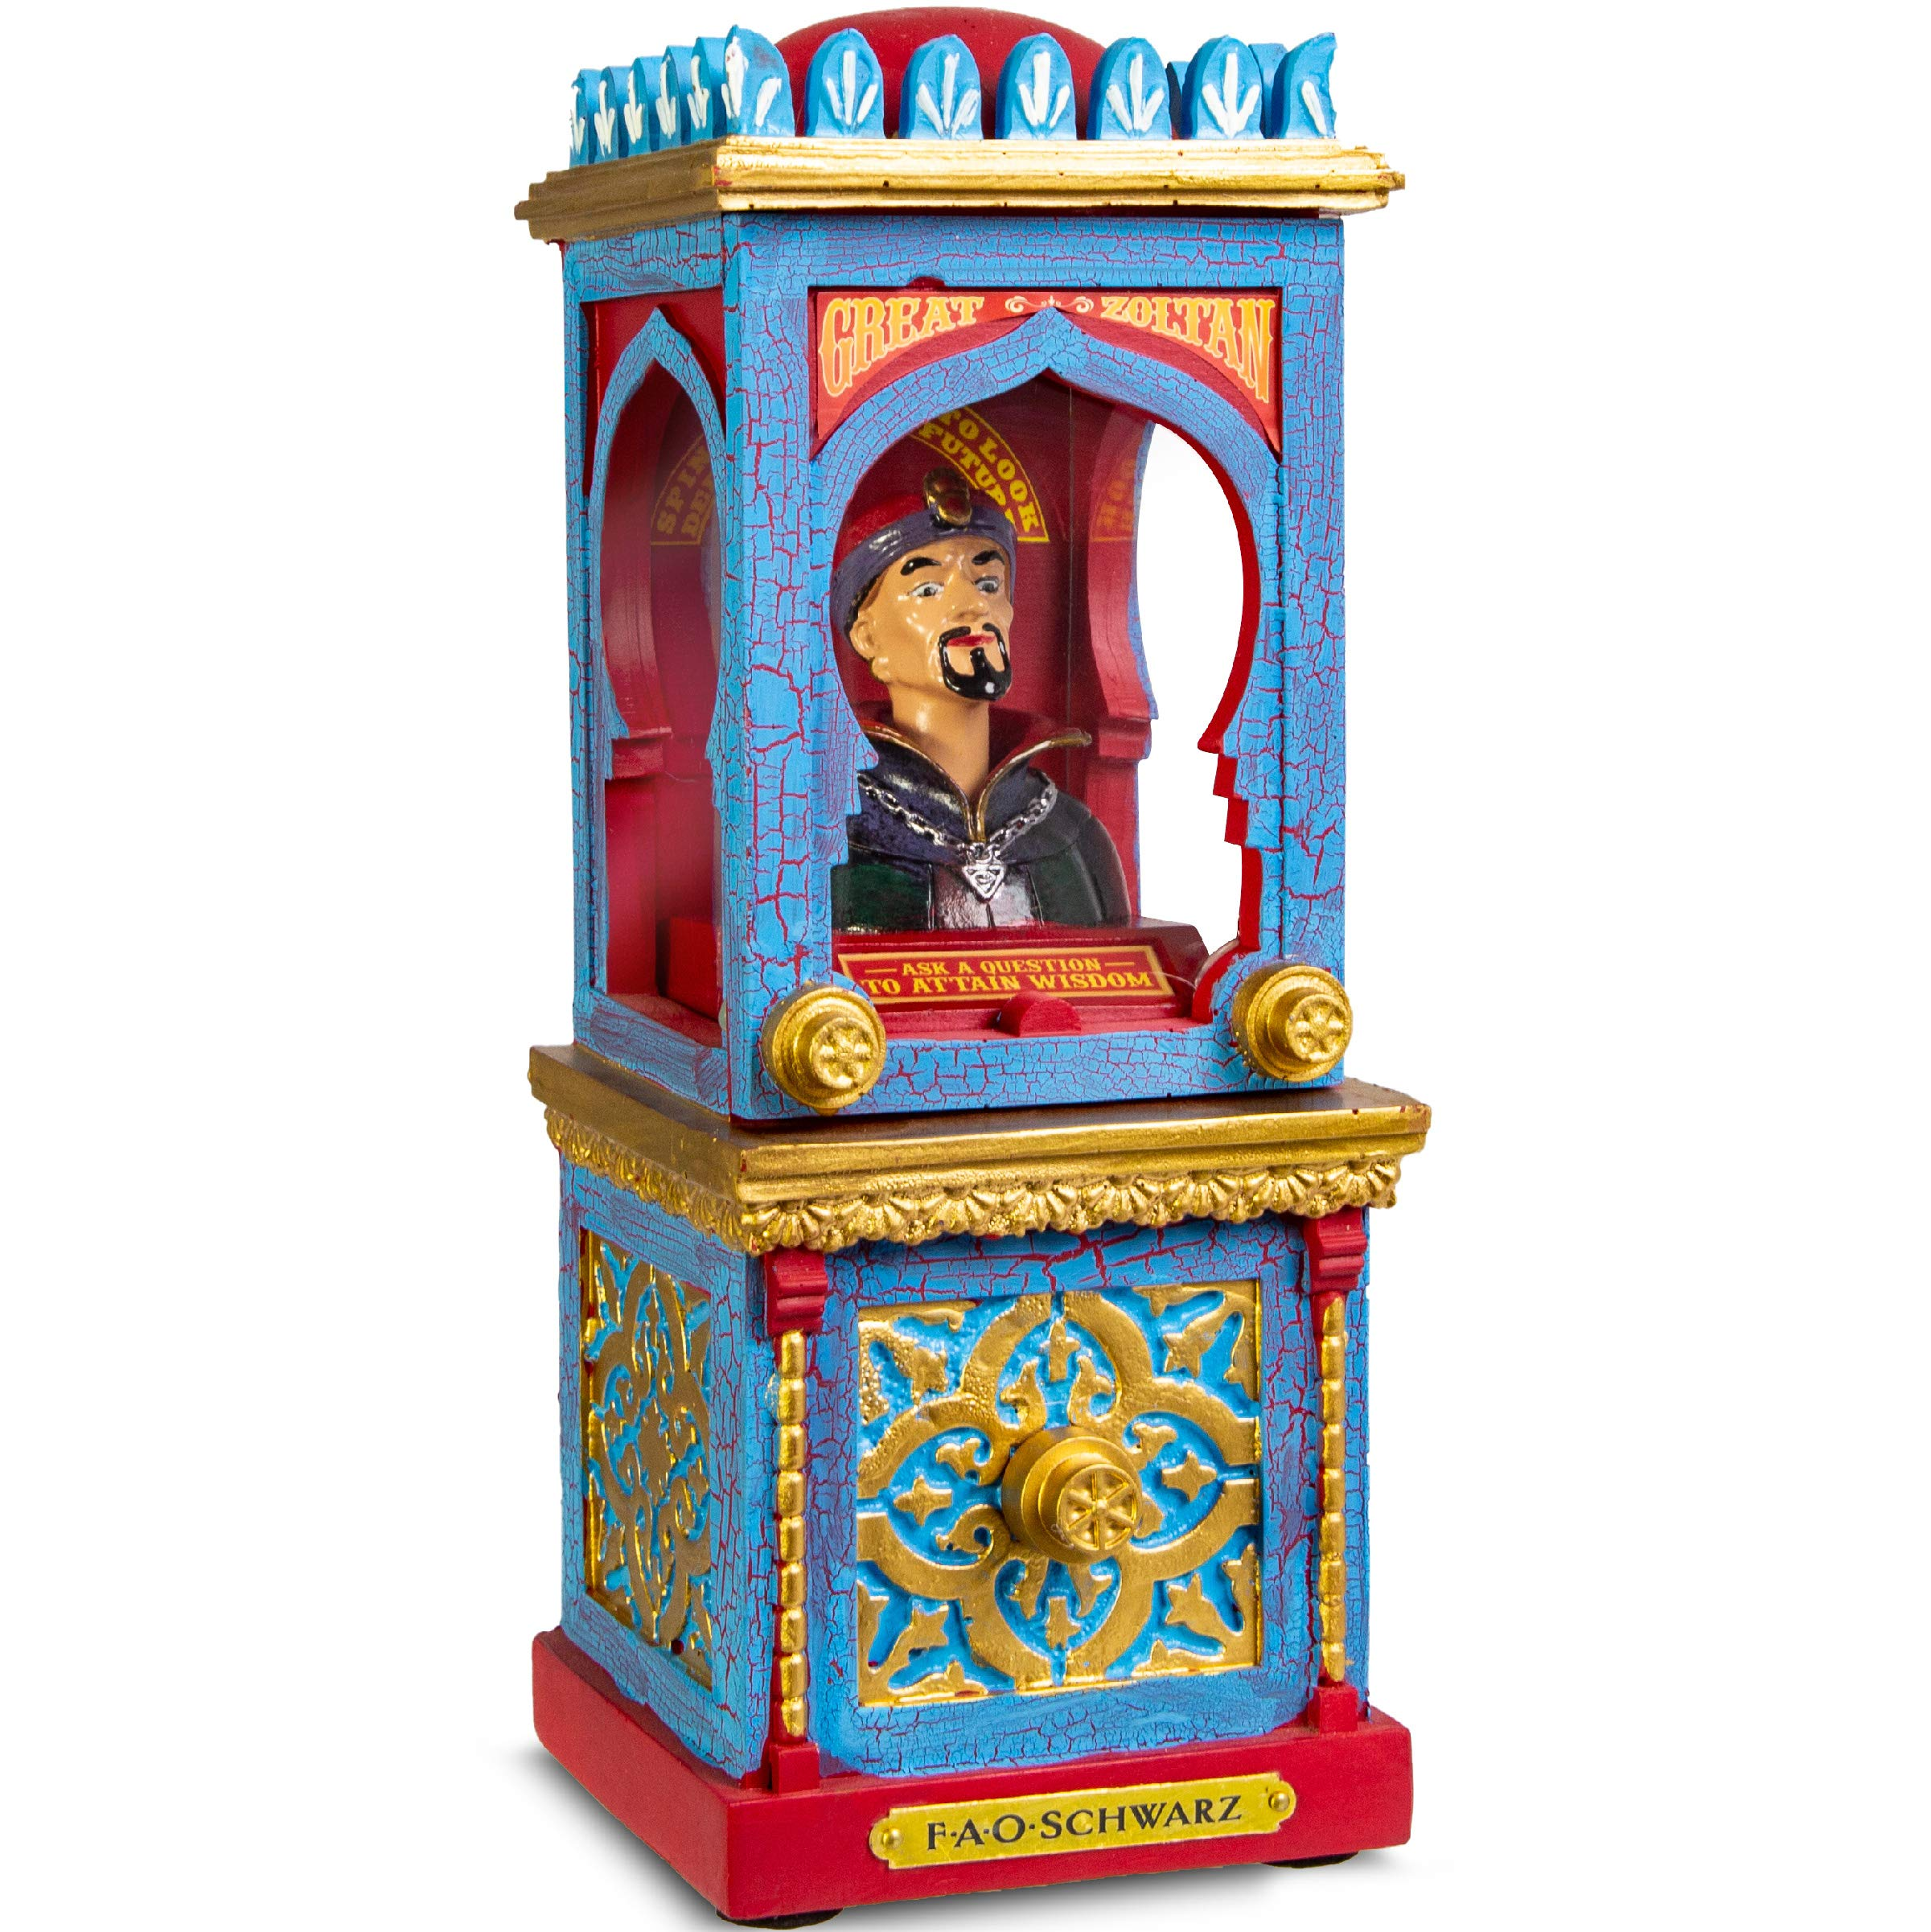 FAO Schwarz Zoltan The Fortune Teller Vintage Carnival-Style Fortune Telling Machine, Button-Activated Talking Fortunes with LED Light & Animation; Classic Retro Design in Blue/Red/Gold